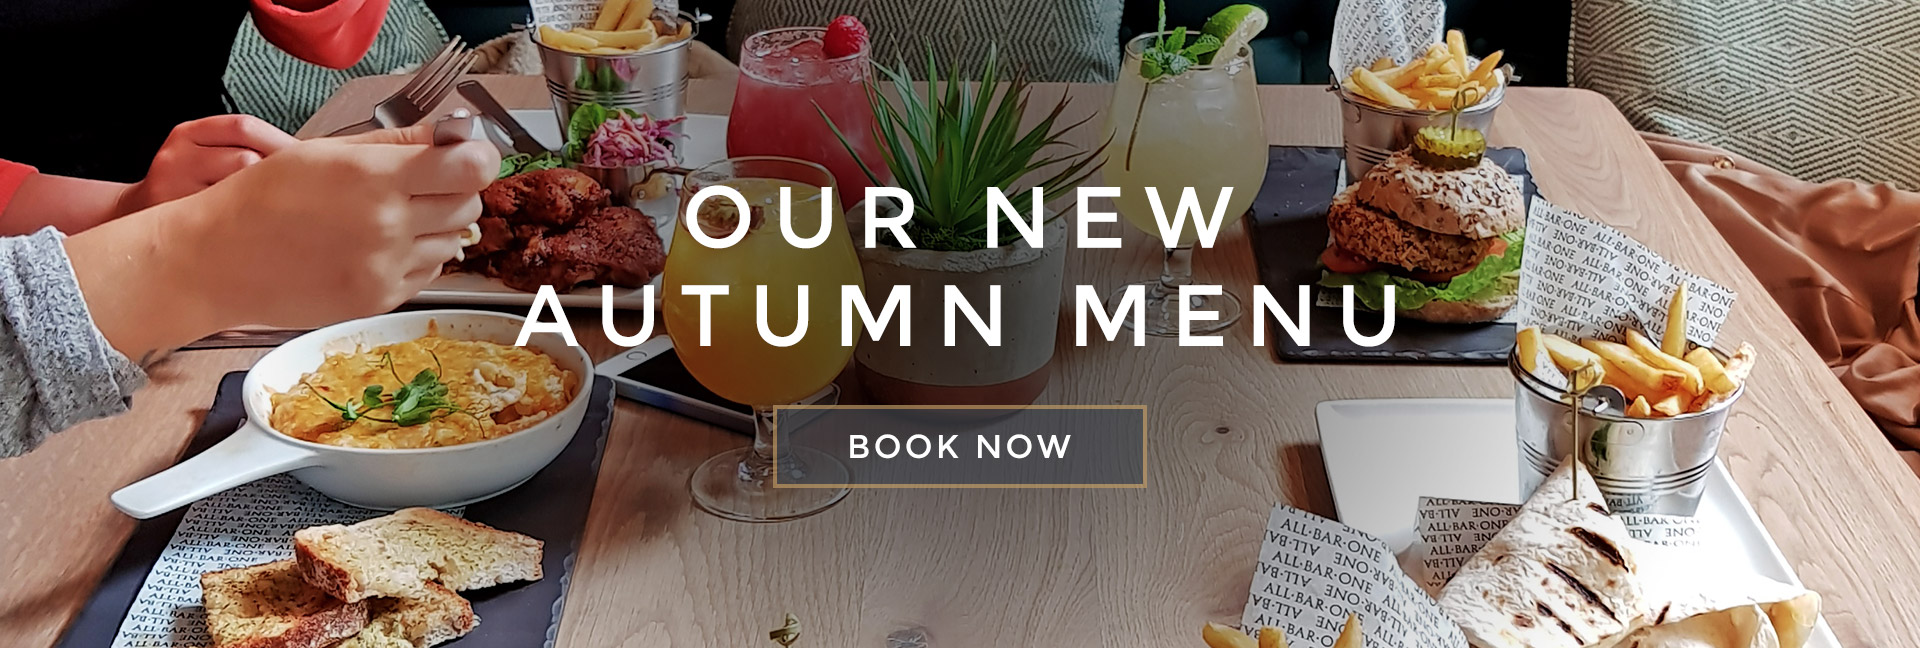 Our new Autumn menu at All Bar One Greek Street Leeds - Book now